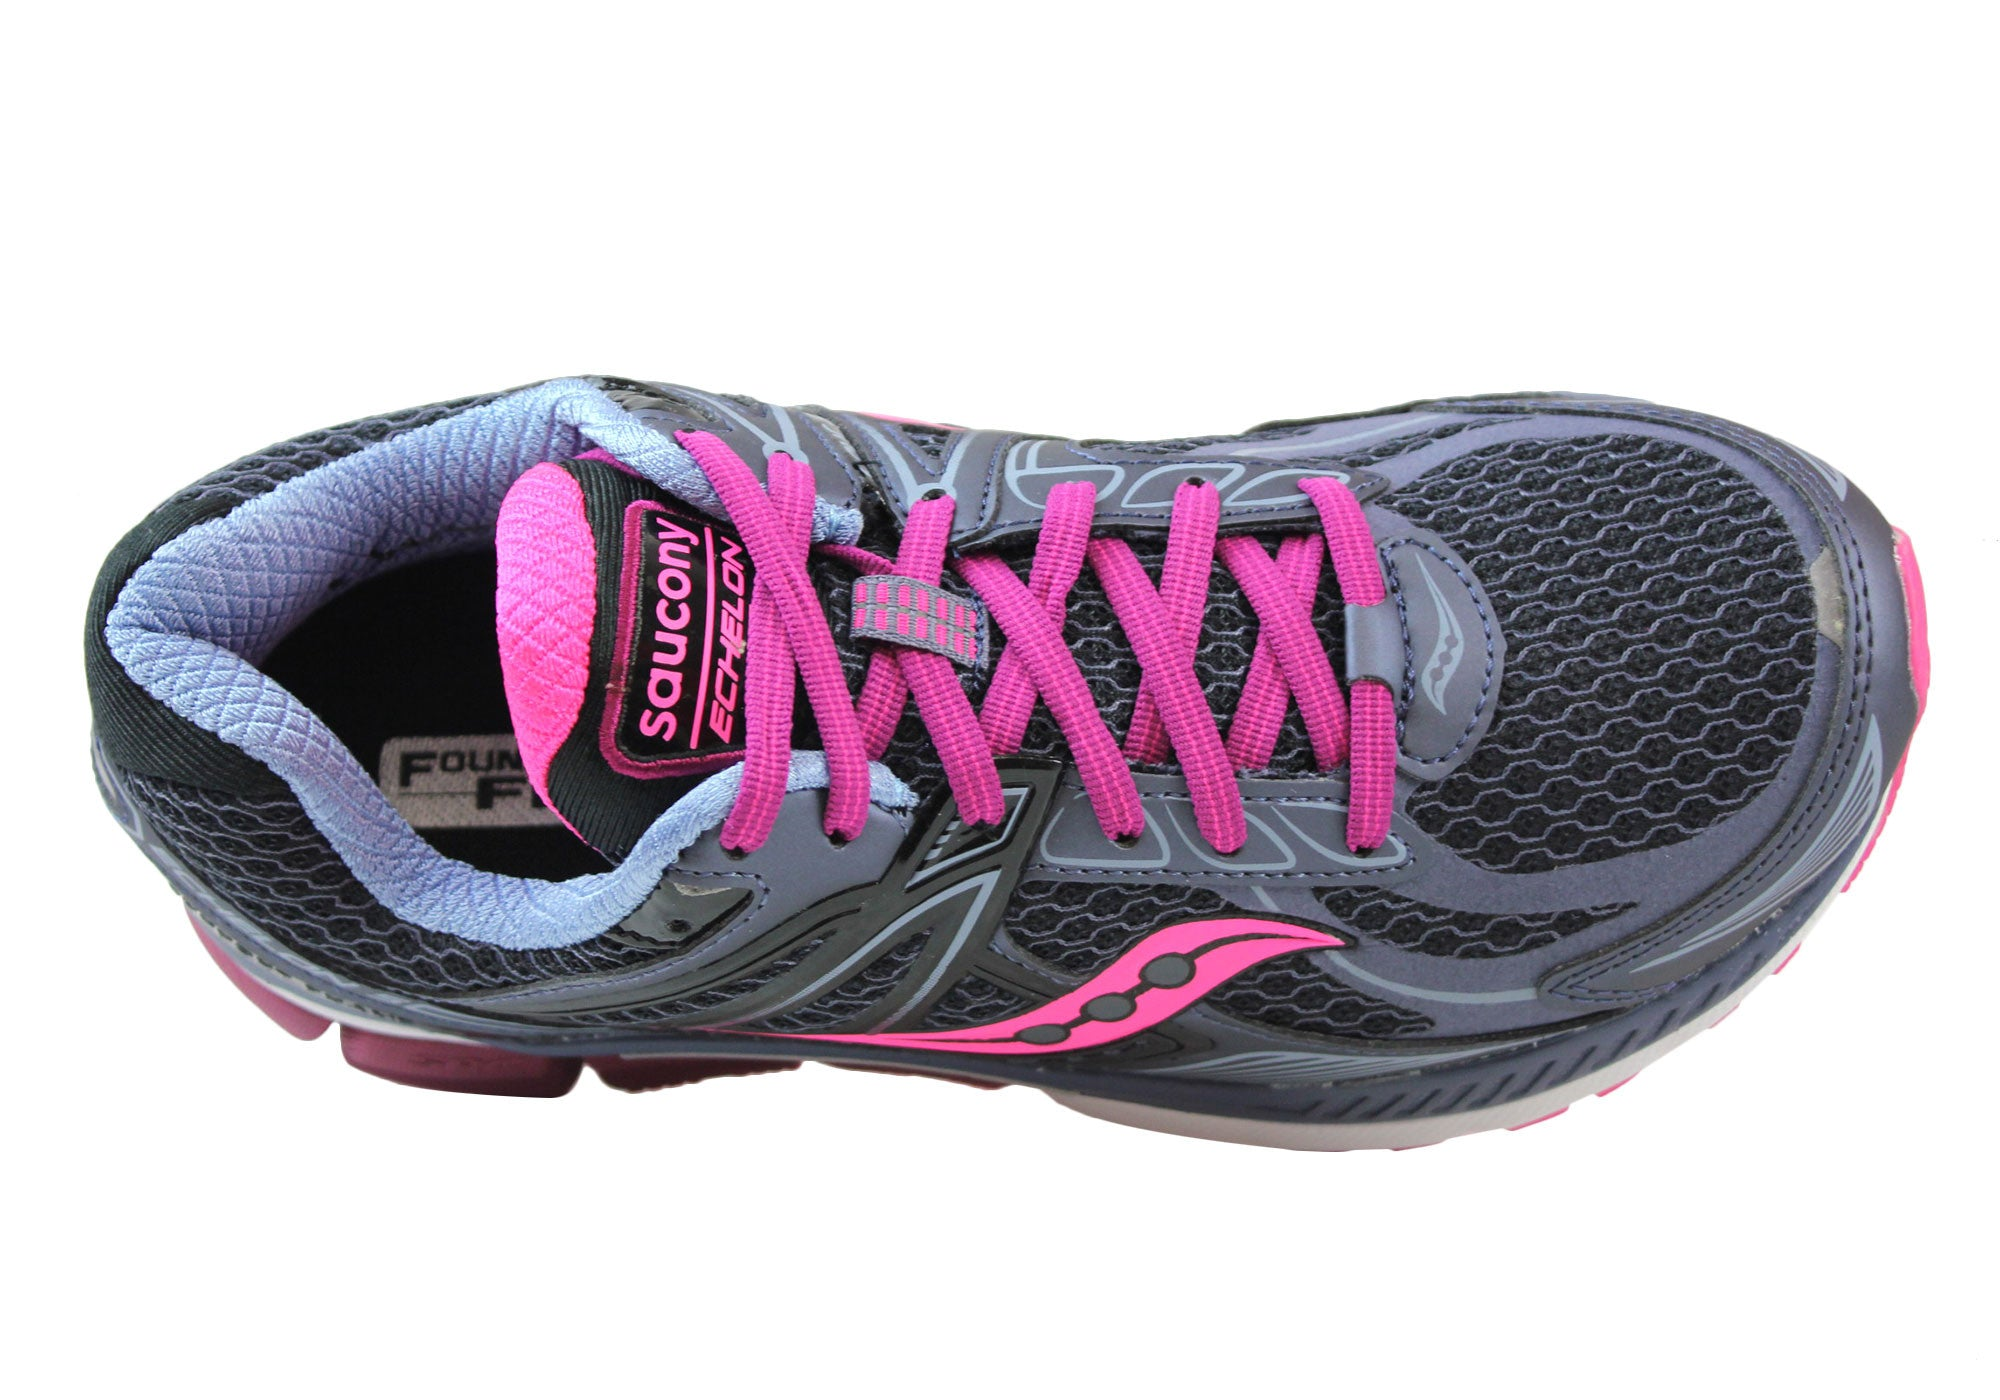 Saucony Echeleon 5 Womens (Wide Fitting) Running/Sport Shoes